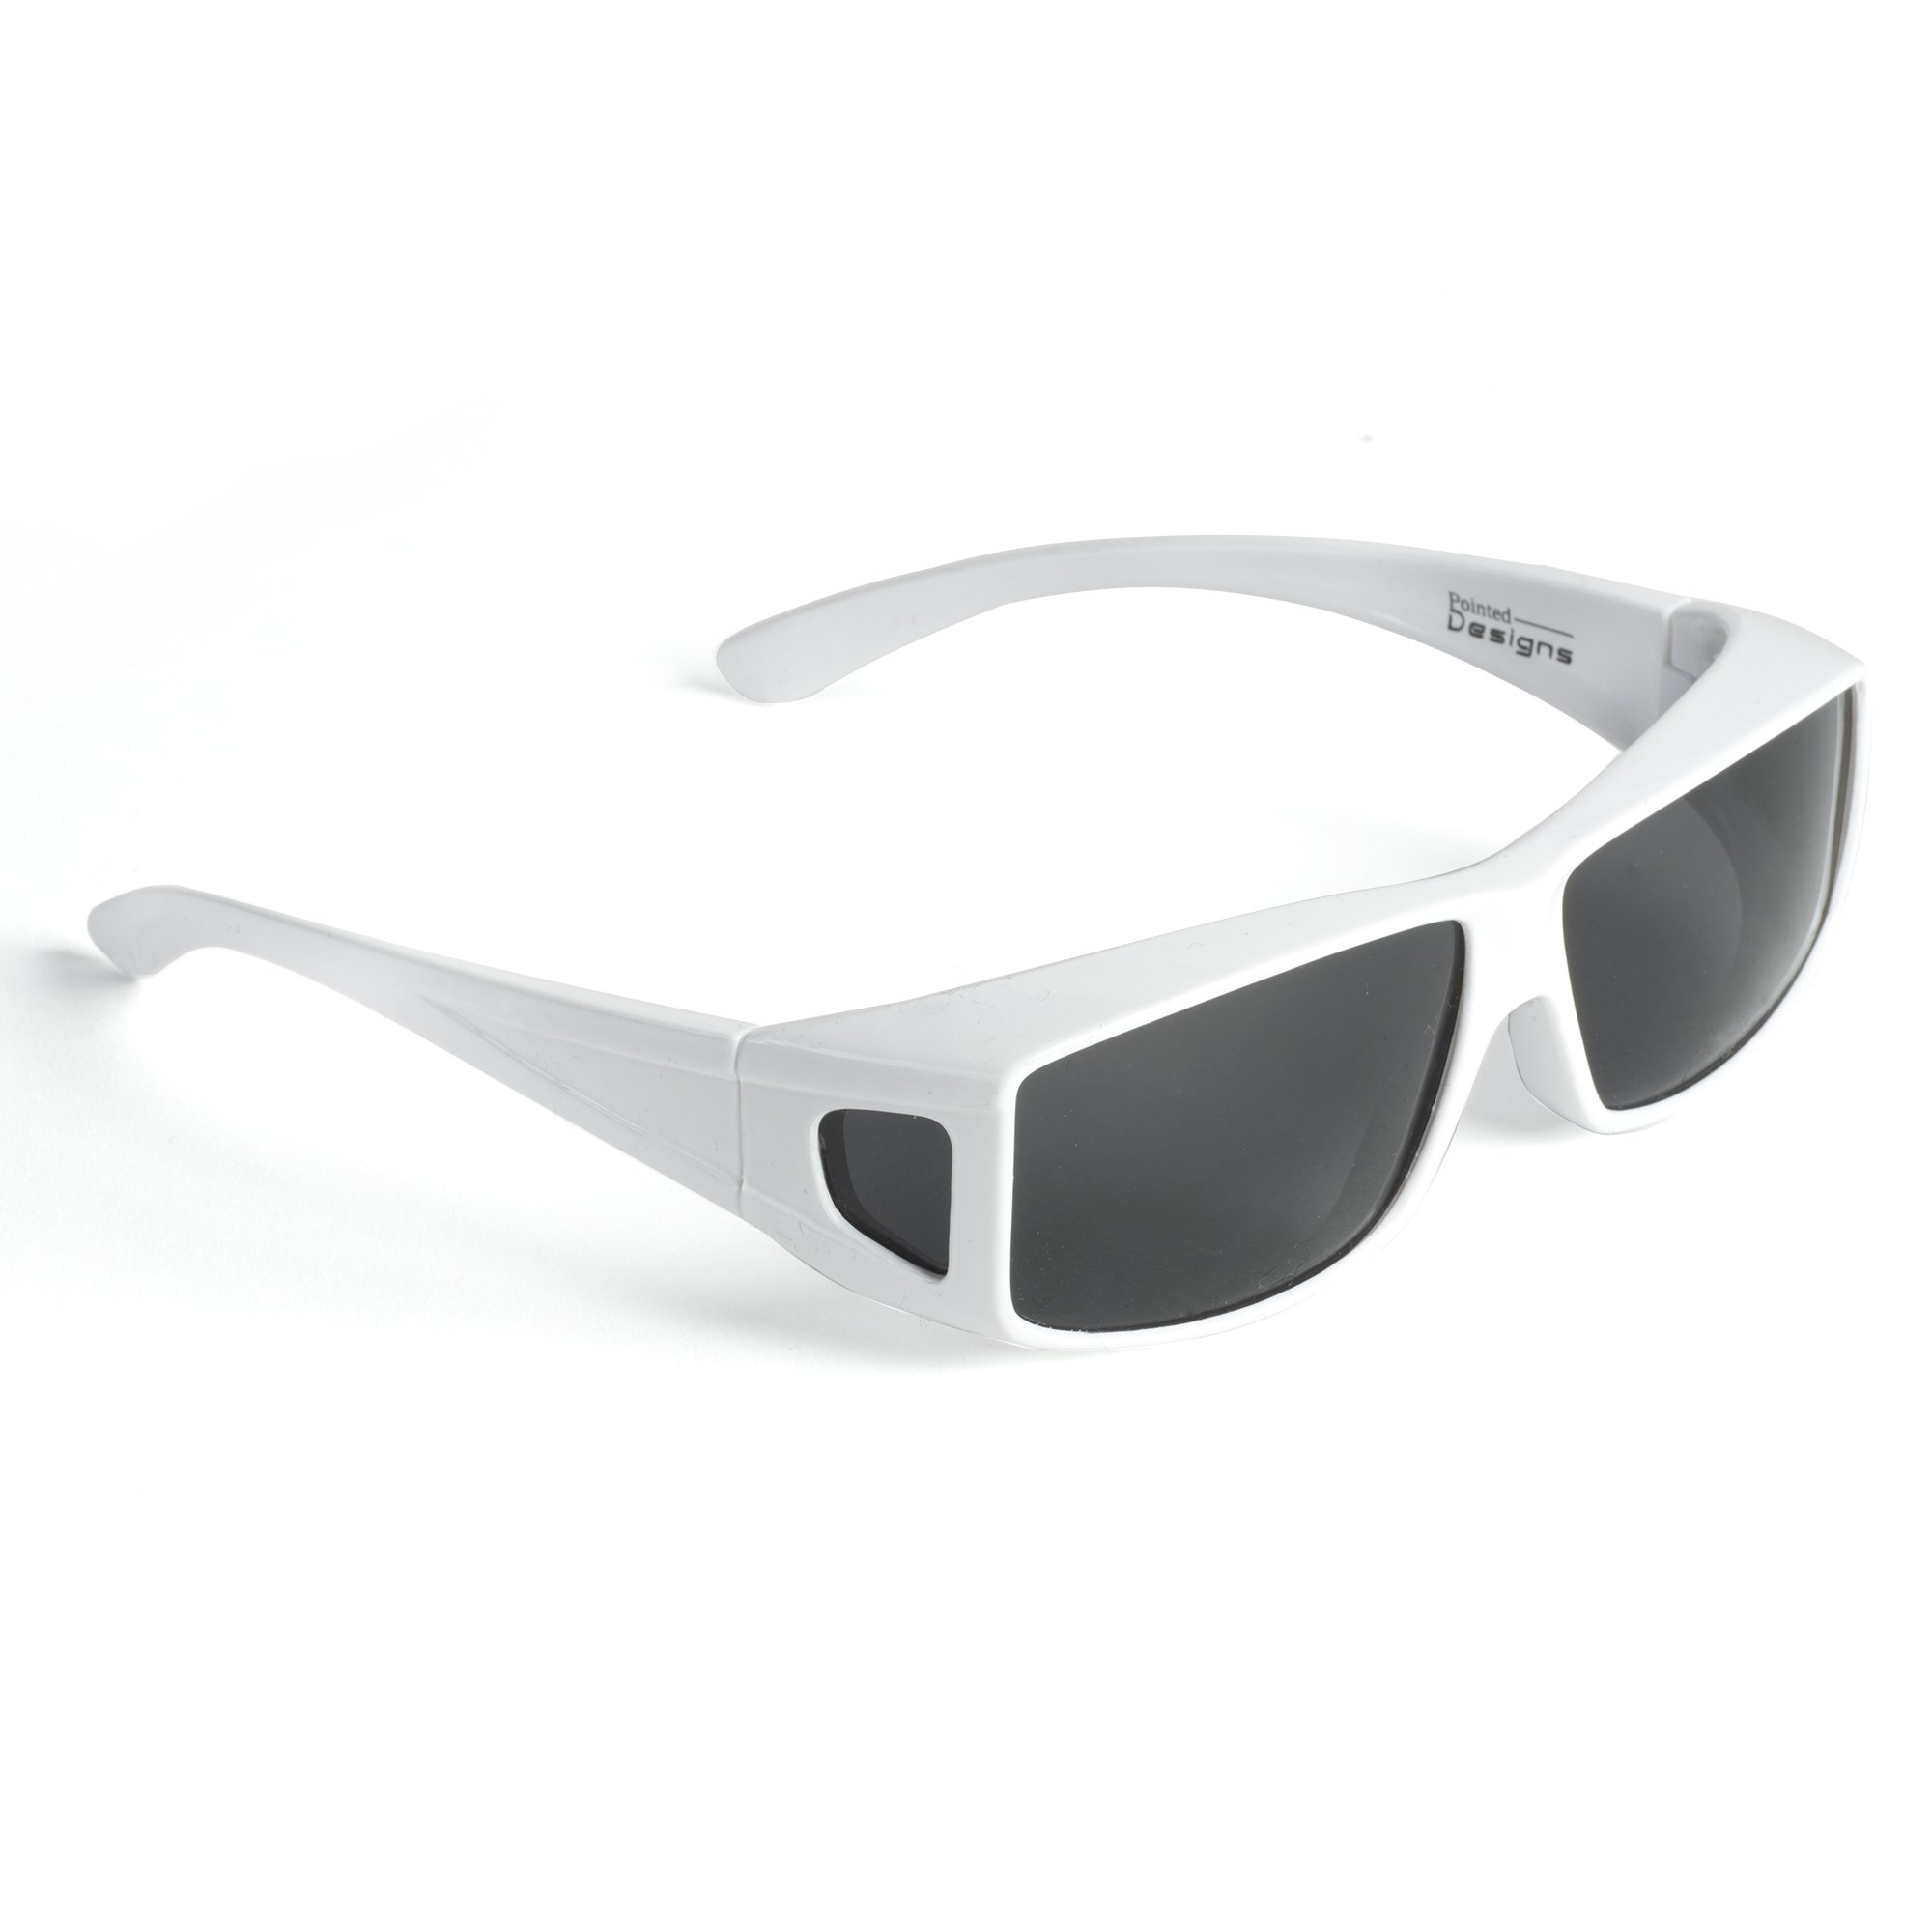 Over Glasses Sunglasses - Polarized Fitover Sunglasses with 100% UV Protection - Style 2 By Pointed Designs (White)